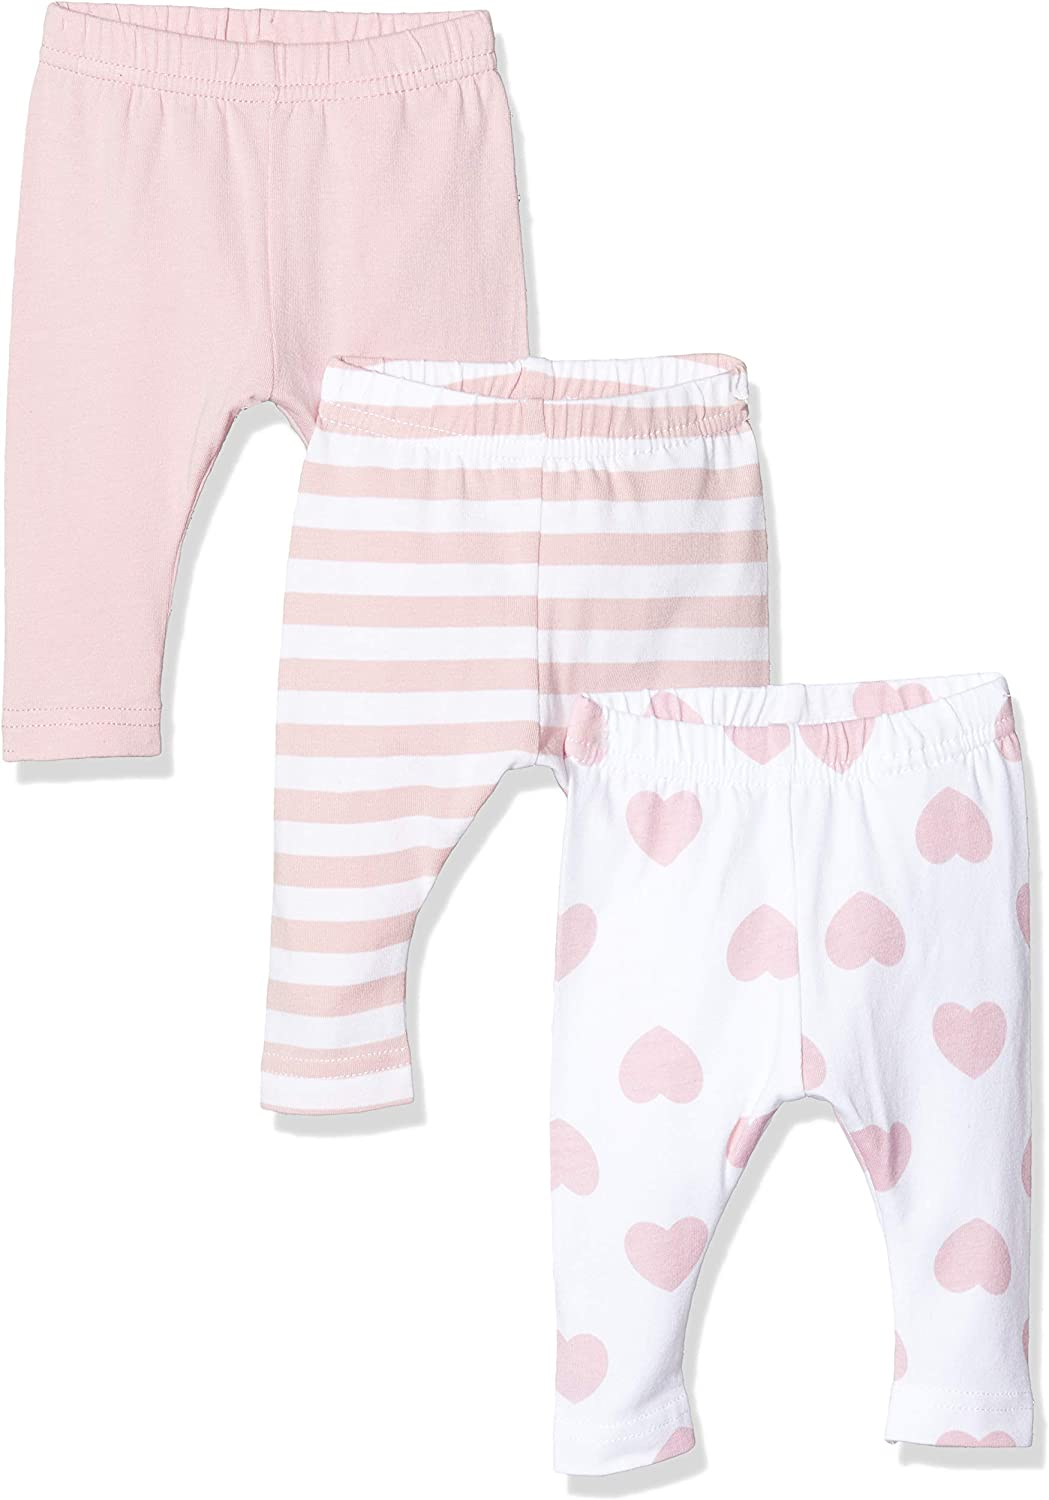 NAME IT Baby-M/ädchen Hose 3er Pack